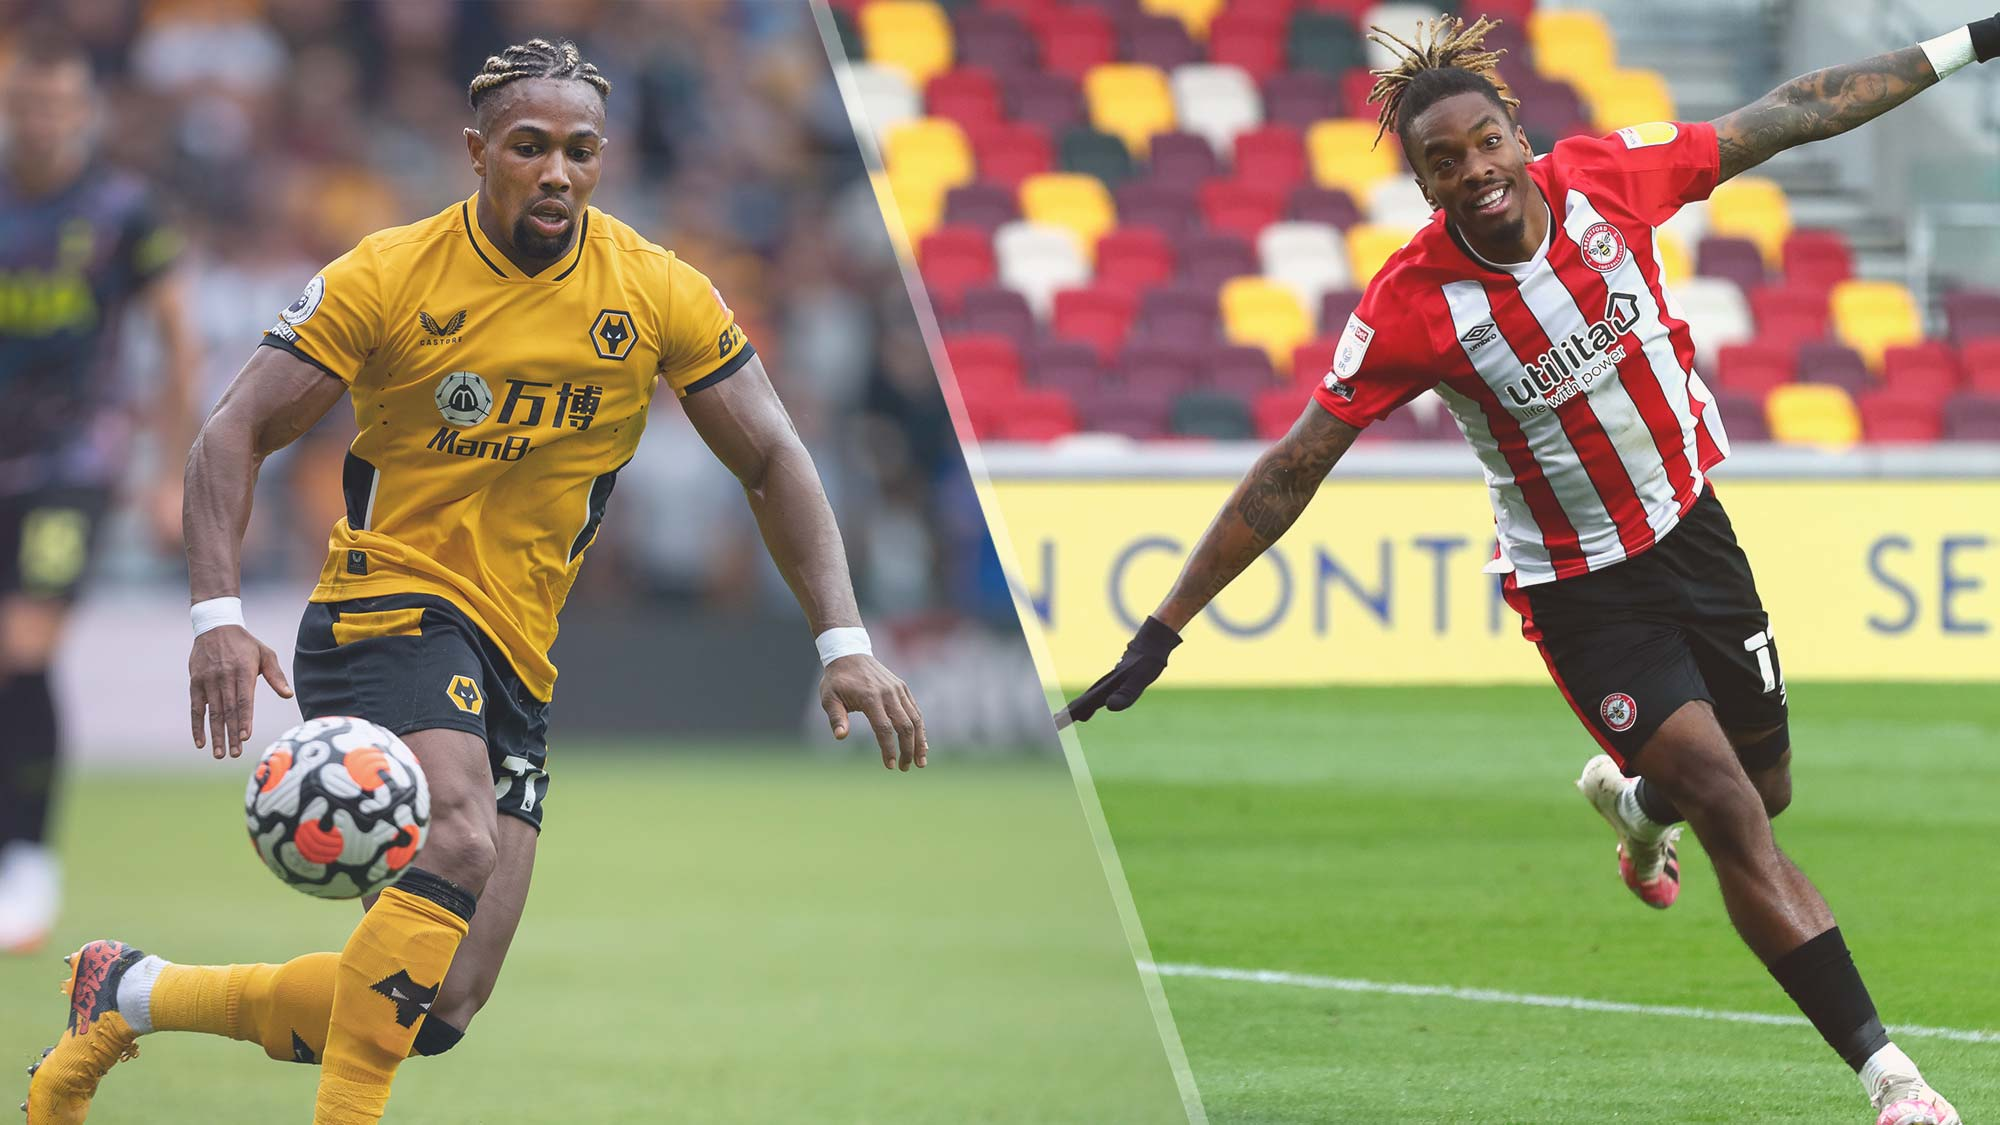 Wolverhampton Wanderers vs Brentford live stream and how to watch Premier  League 21/22 game online | Tom's Guide